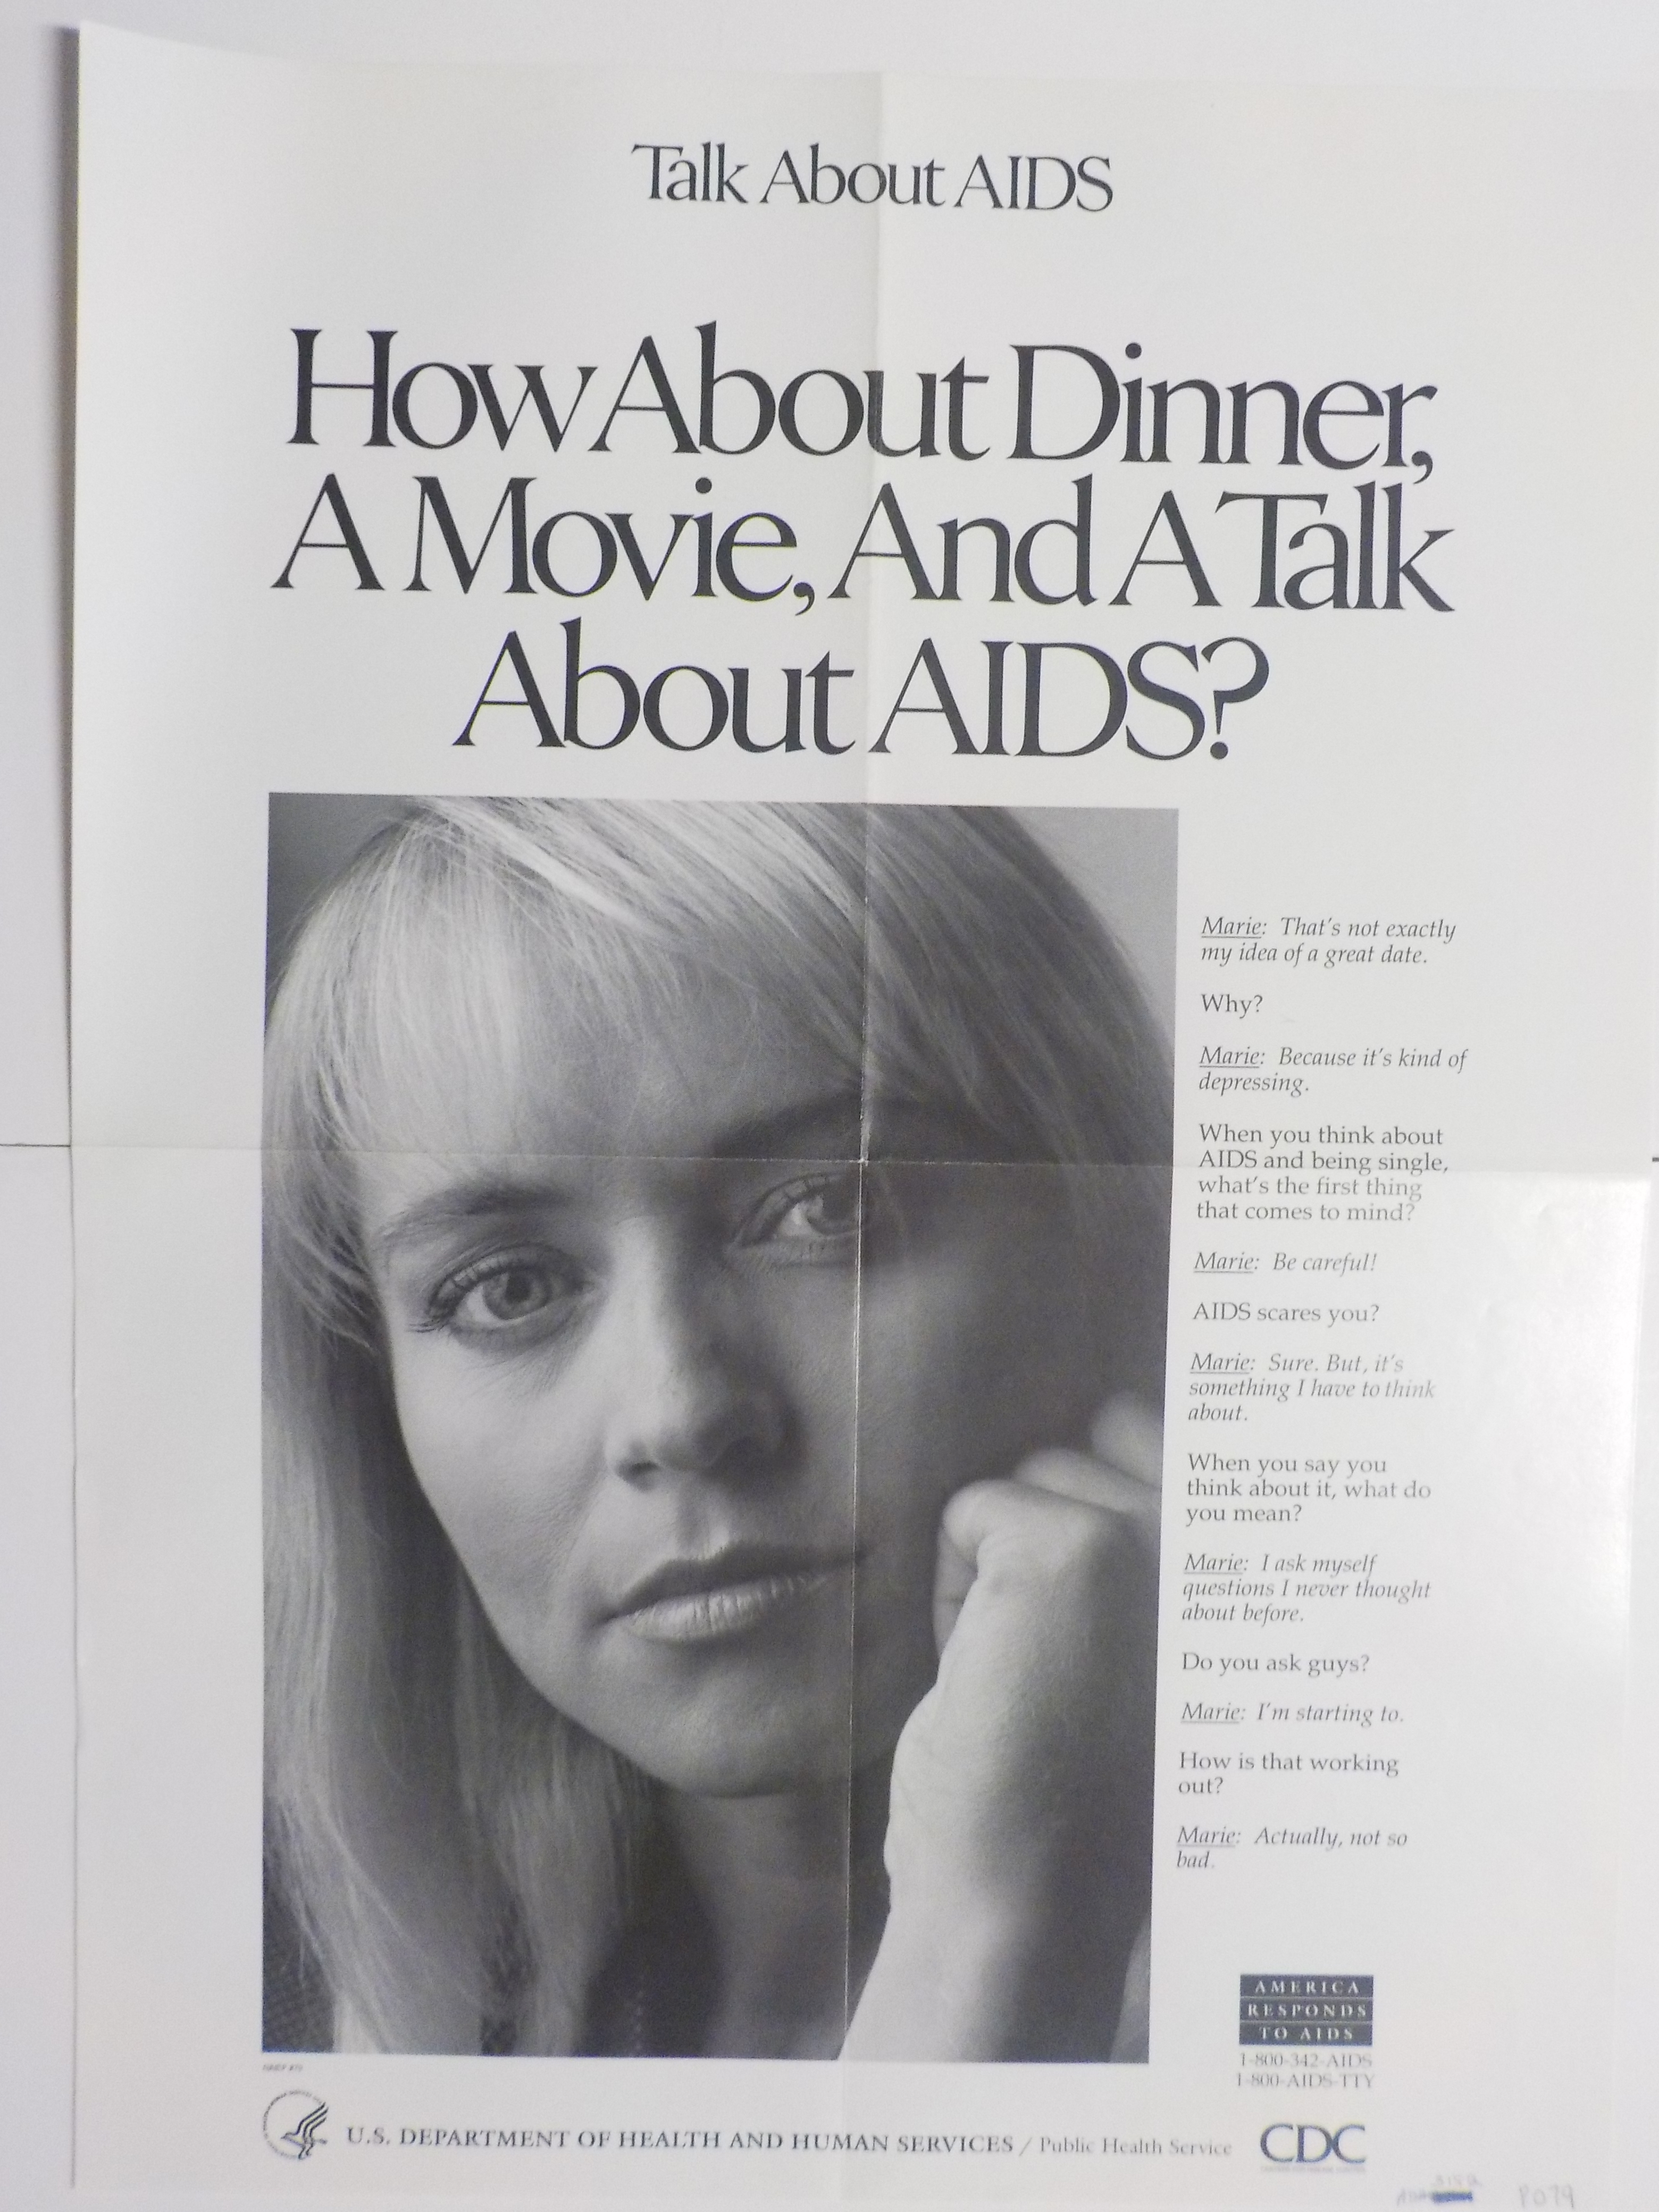 How about dinner, a movie, and a talk about AIDS?